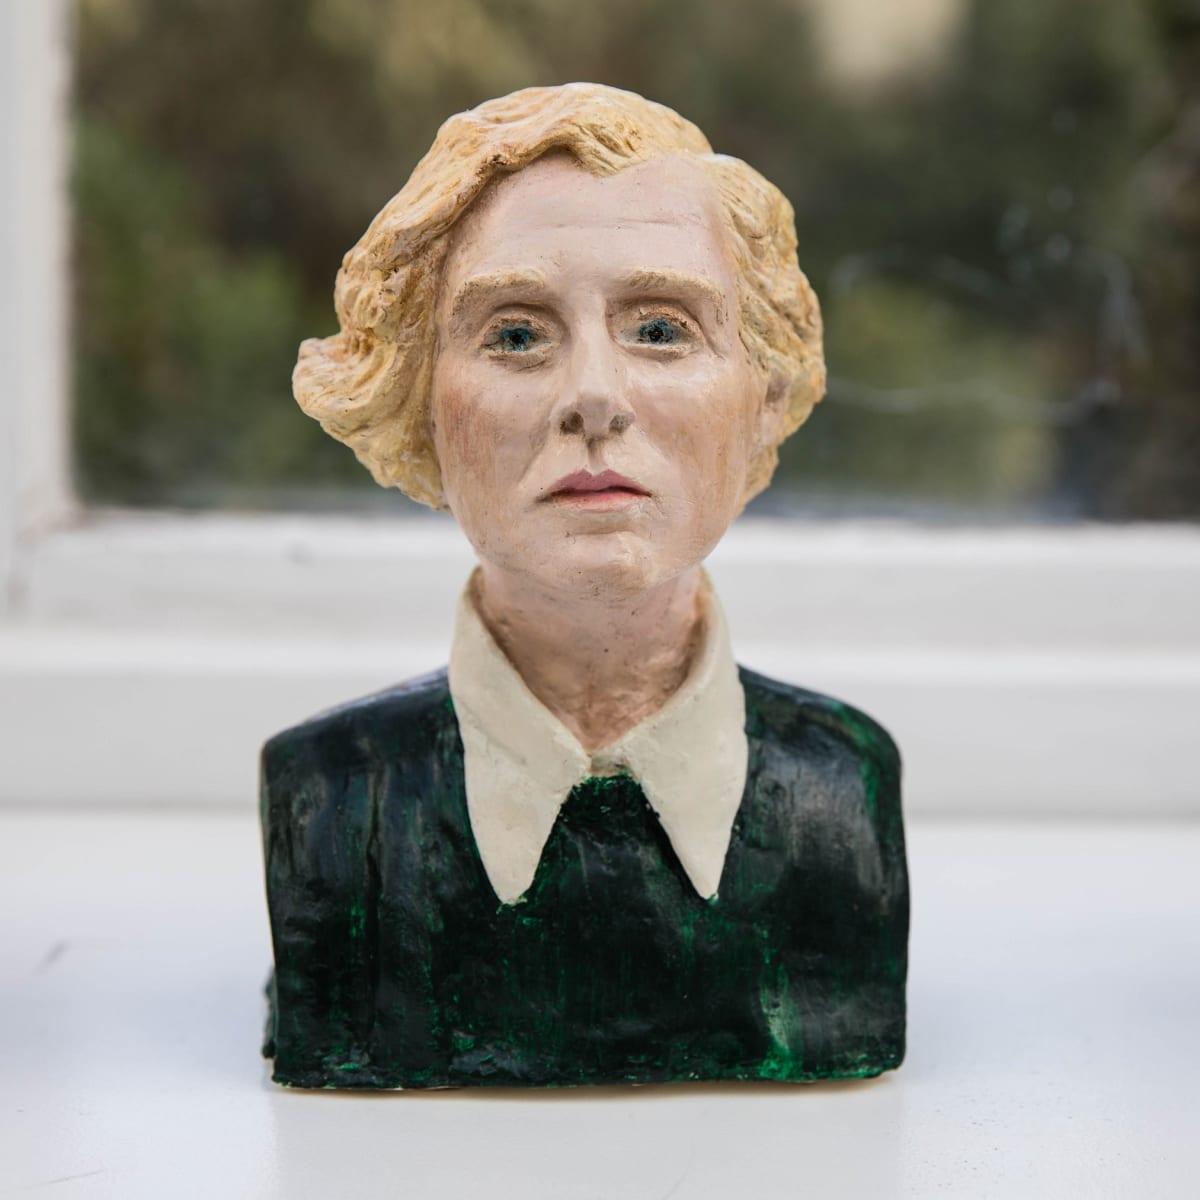 Nicole Farhi Daphne du Maurier ciment fondu and acrylic; hand-painted bronze casts available to purchase 18 x 13 x 7 cm edition of 7 + 3 APs